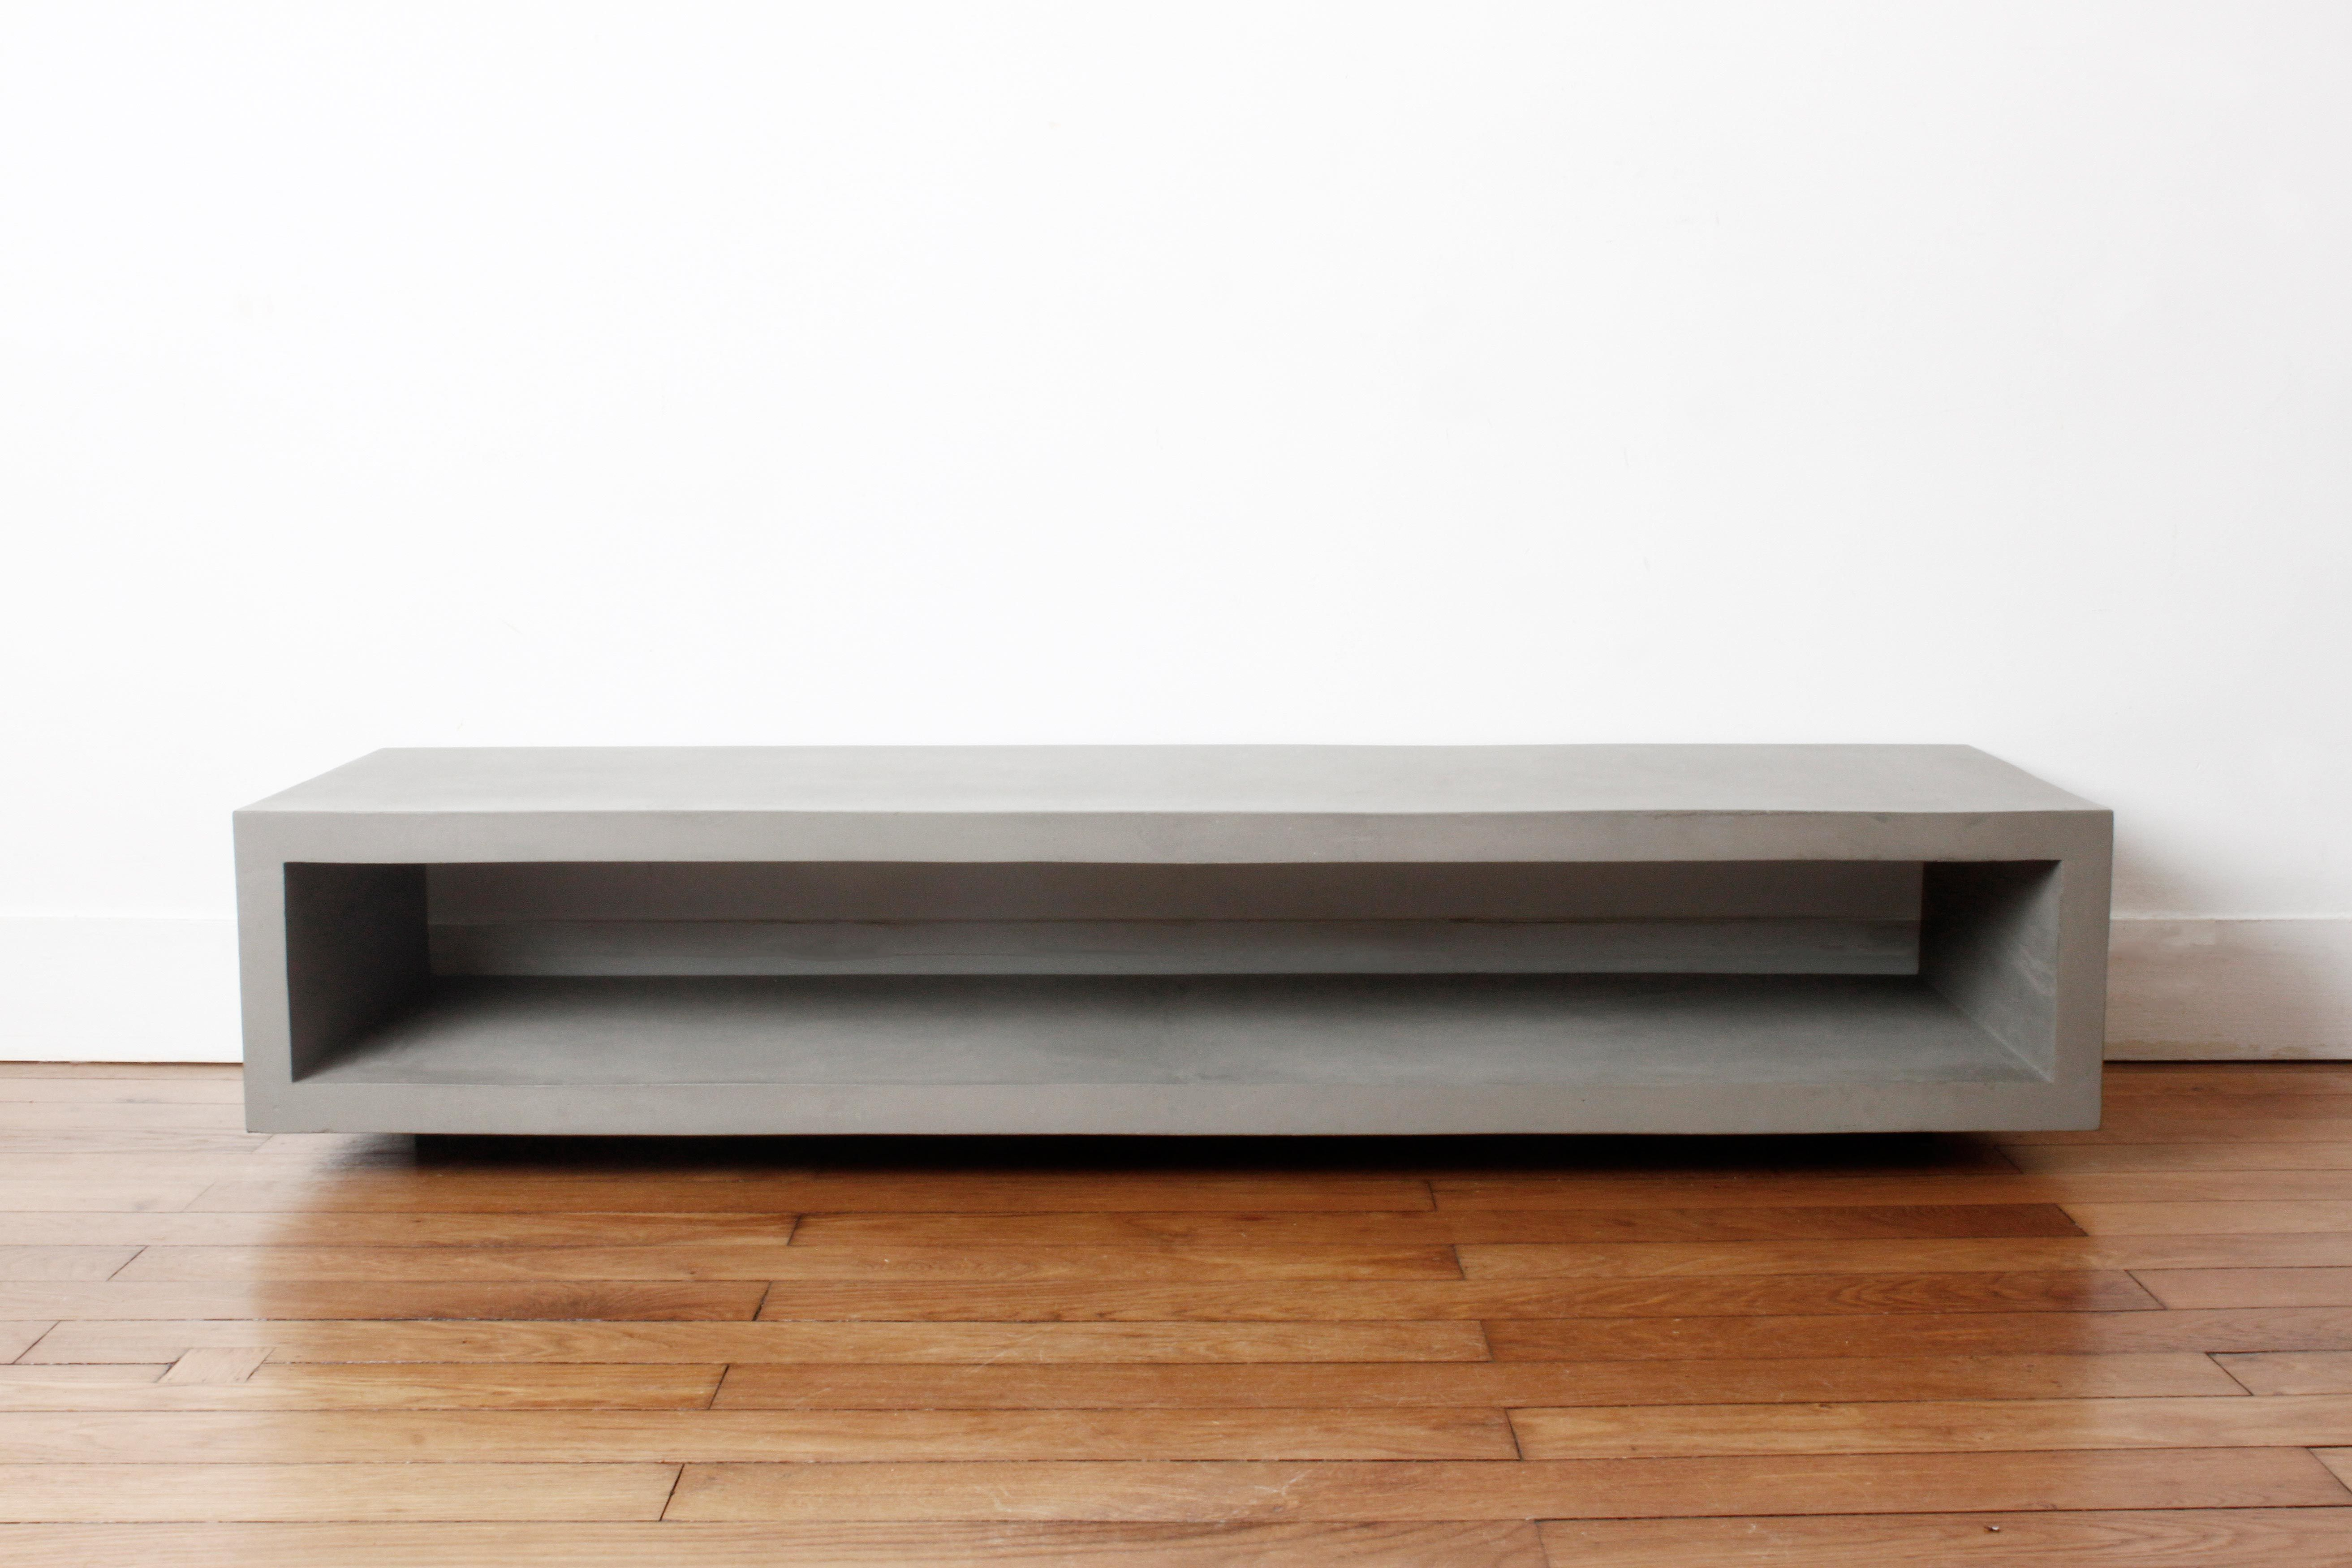 Monobloc Concrete Tv Cabinet Is 100% Minimalist This Tv Shelf